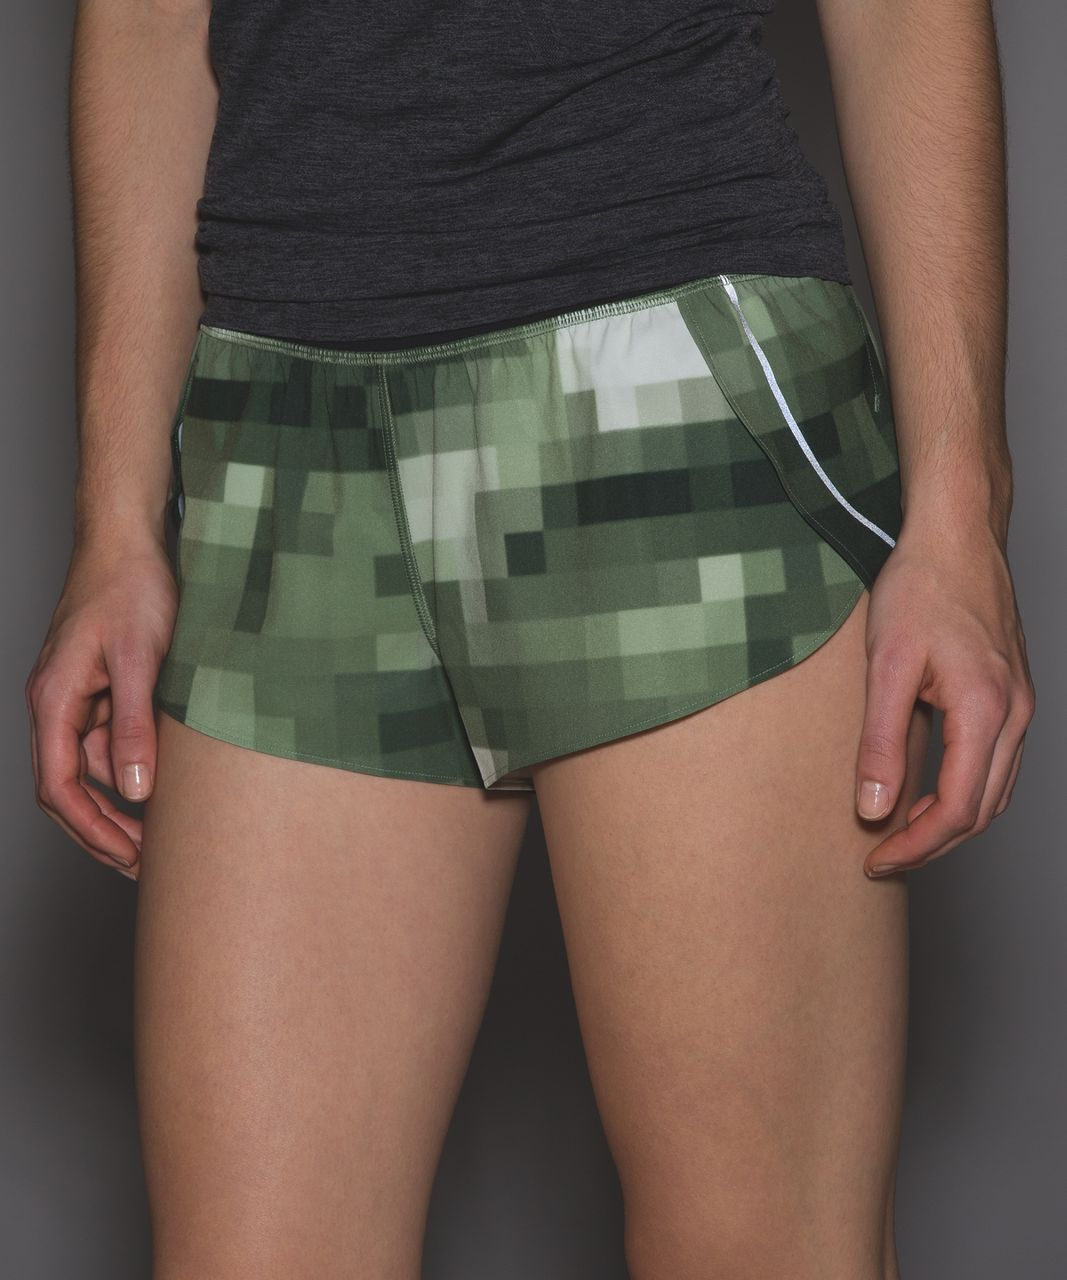 Lululemon Split Second Short II - Domo Pixel Desert Olive Multi / Black